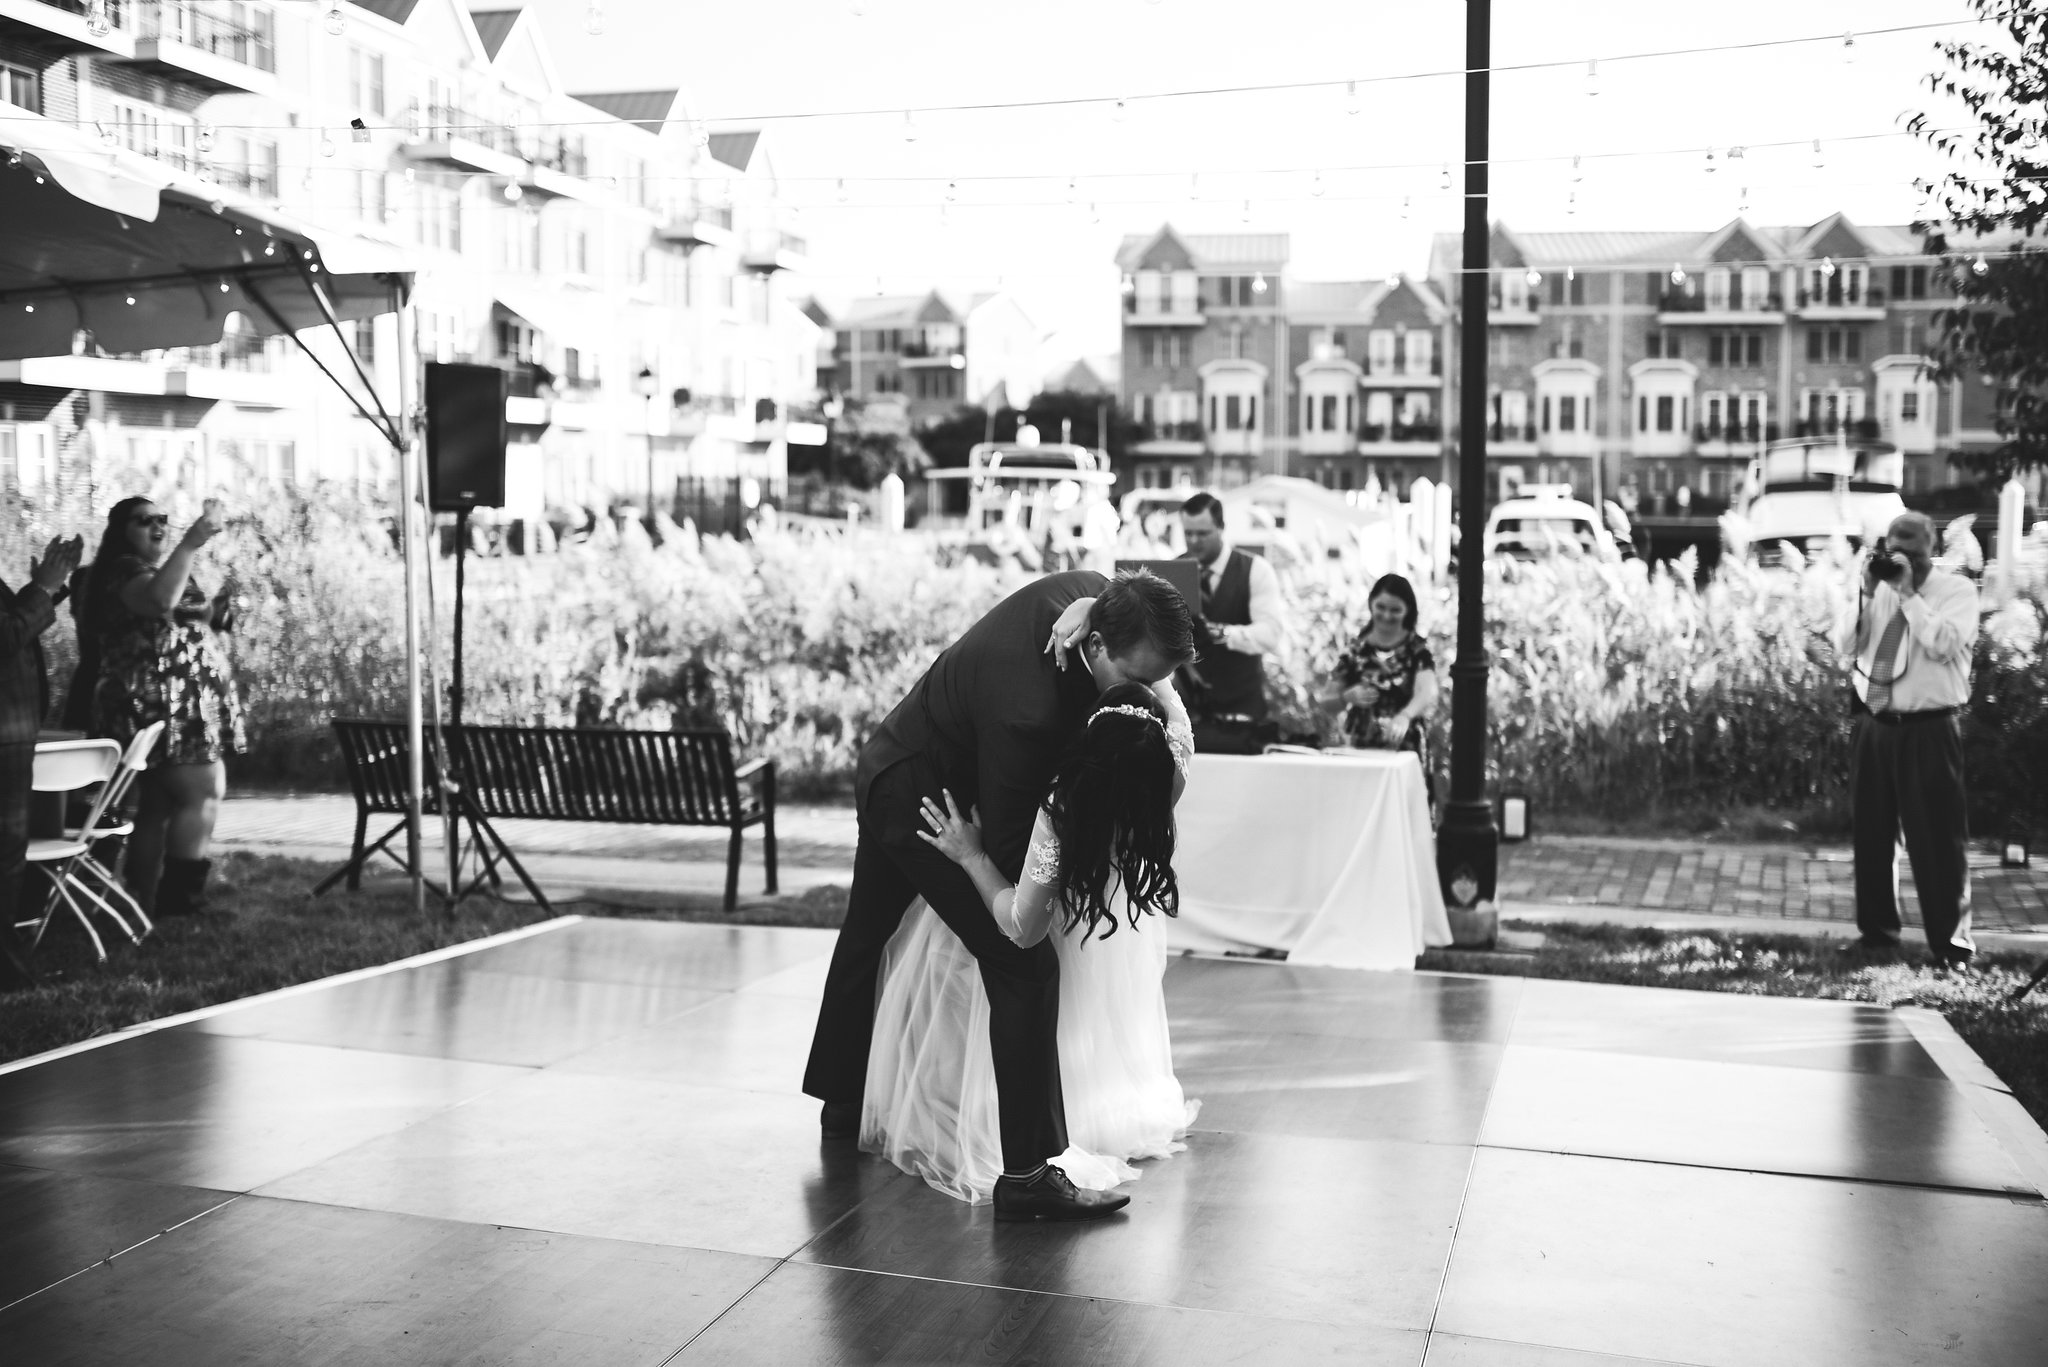 Baltimore, Canton, Church Wedding, Modern, Outdoors, Maryland Wedding Photographer, Romantic, Classic, St. Casimir Church, Black and white photo, Groom dipping Bride on dancefloor, Bride and Groom kiss at reception